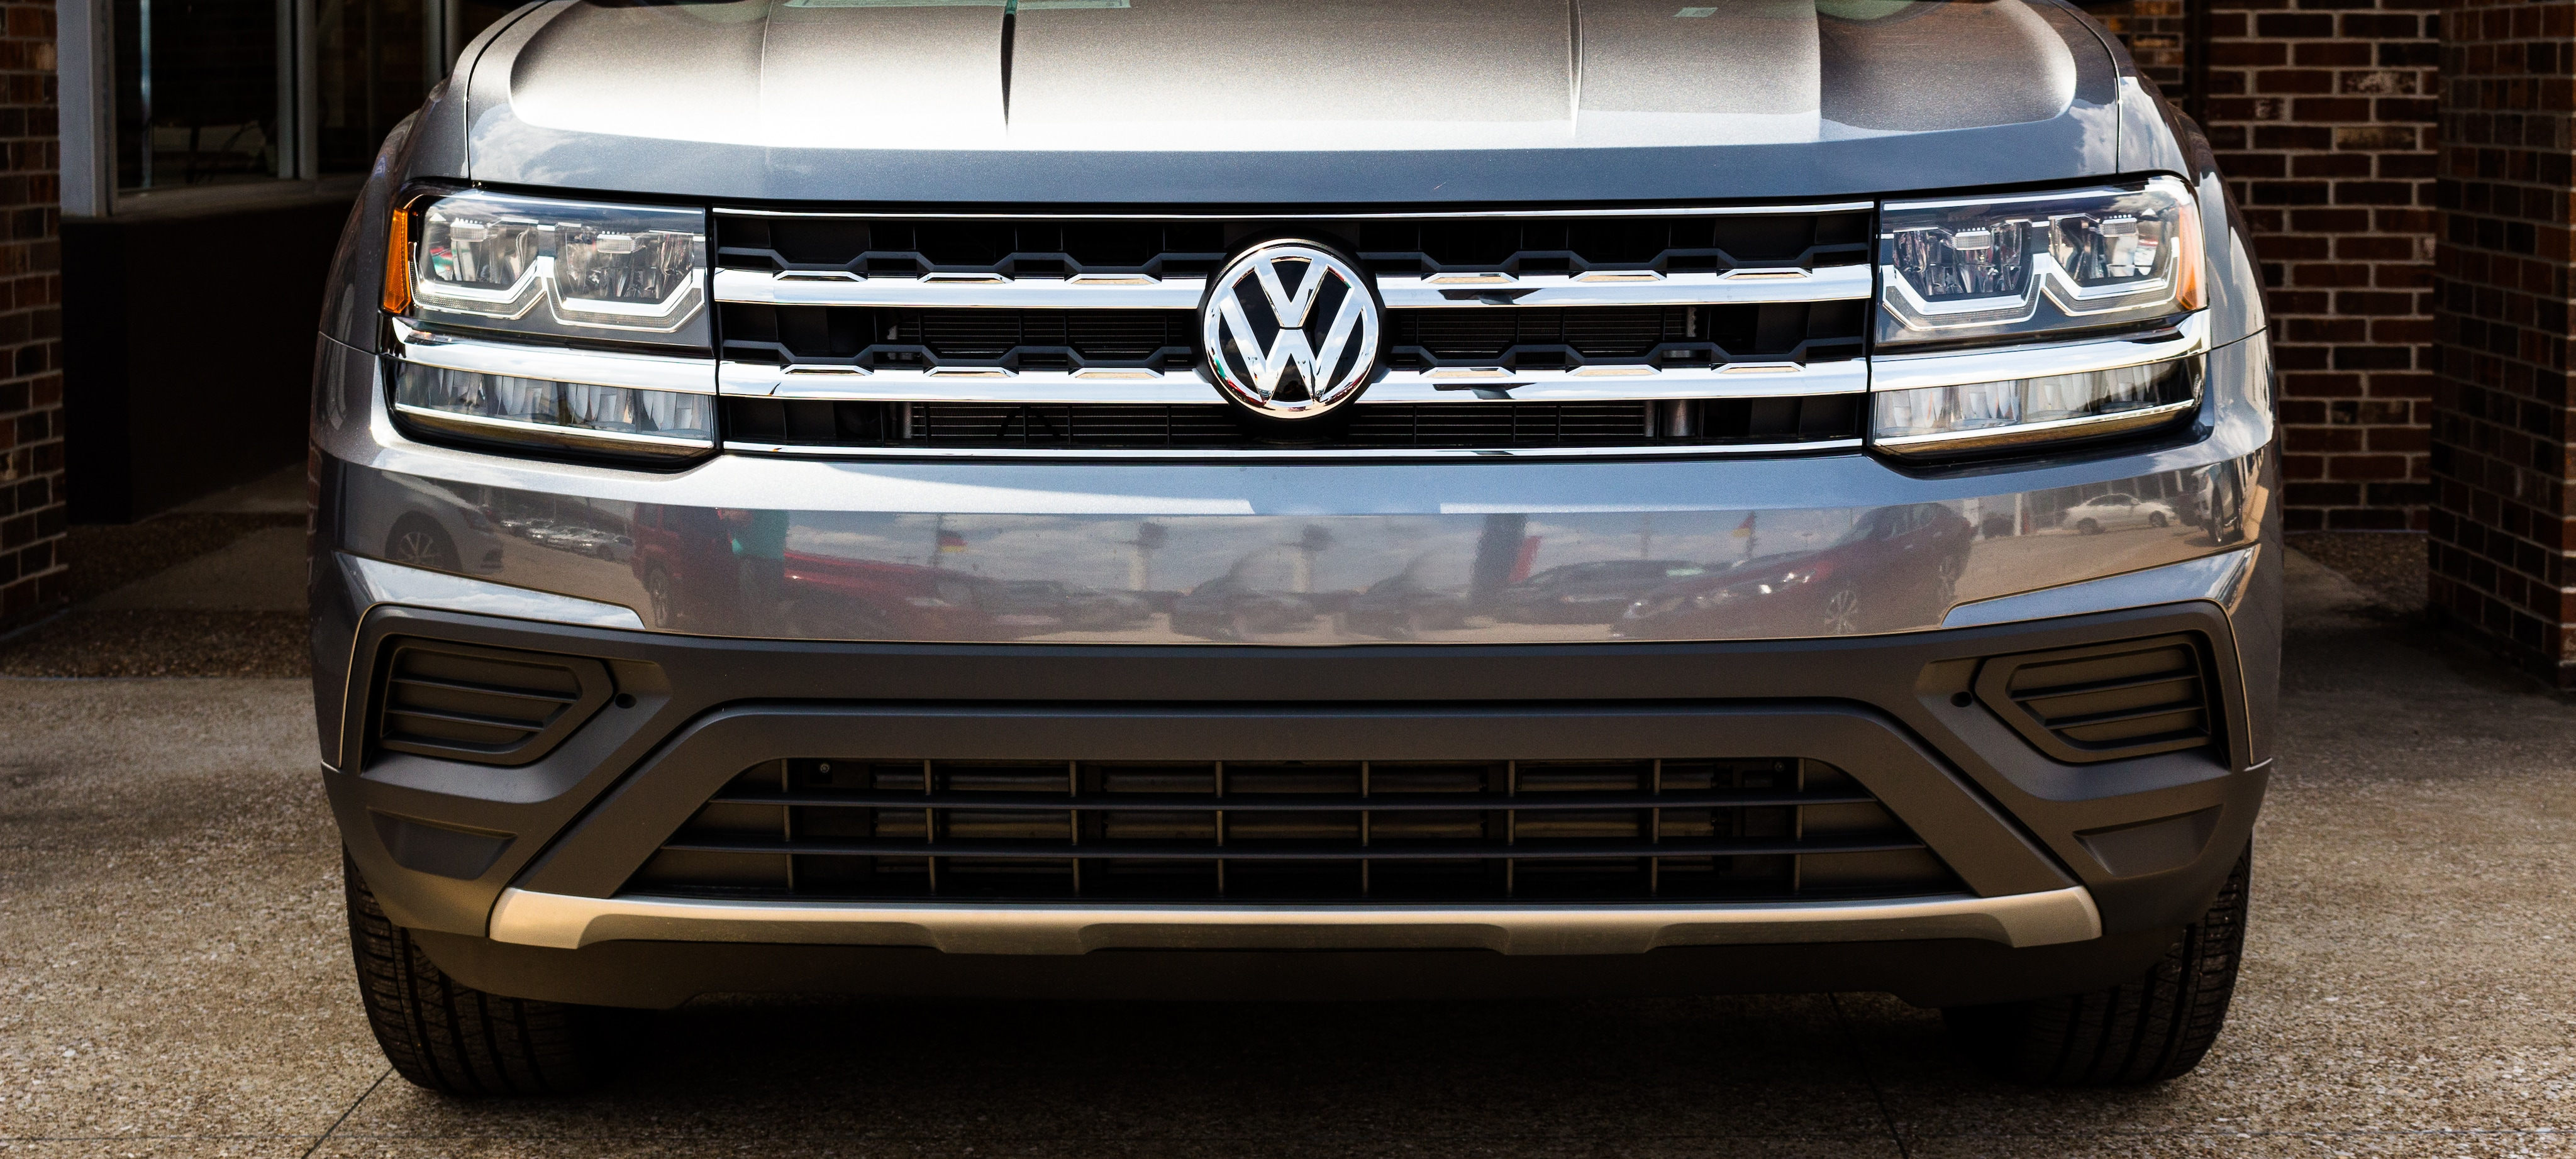 Indiana VW Contact us at D Patrick VW of Evansville Indiana